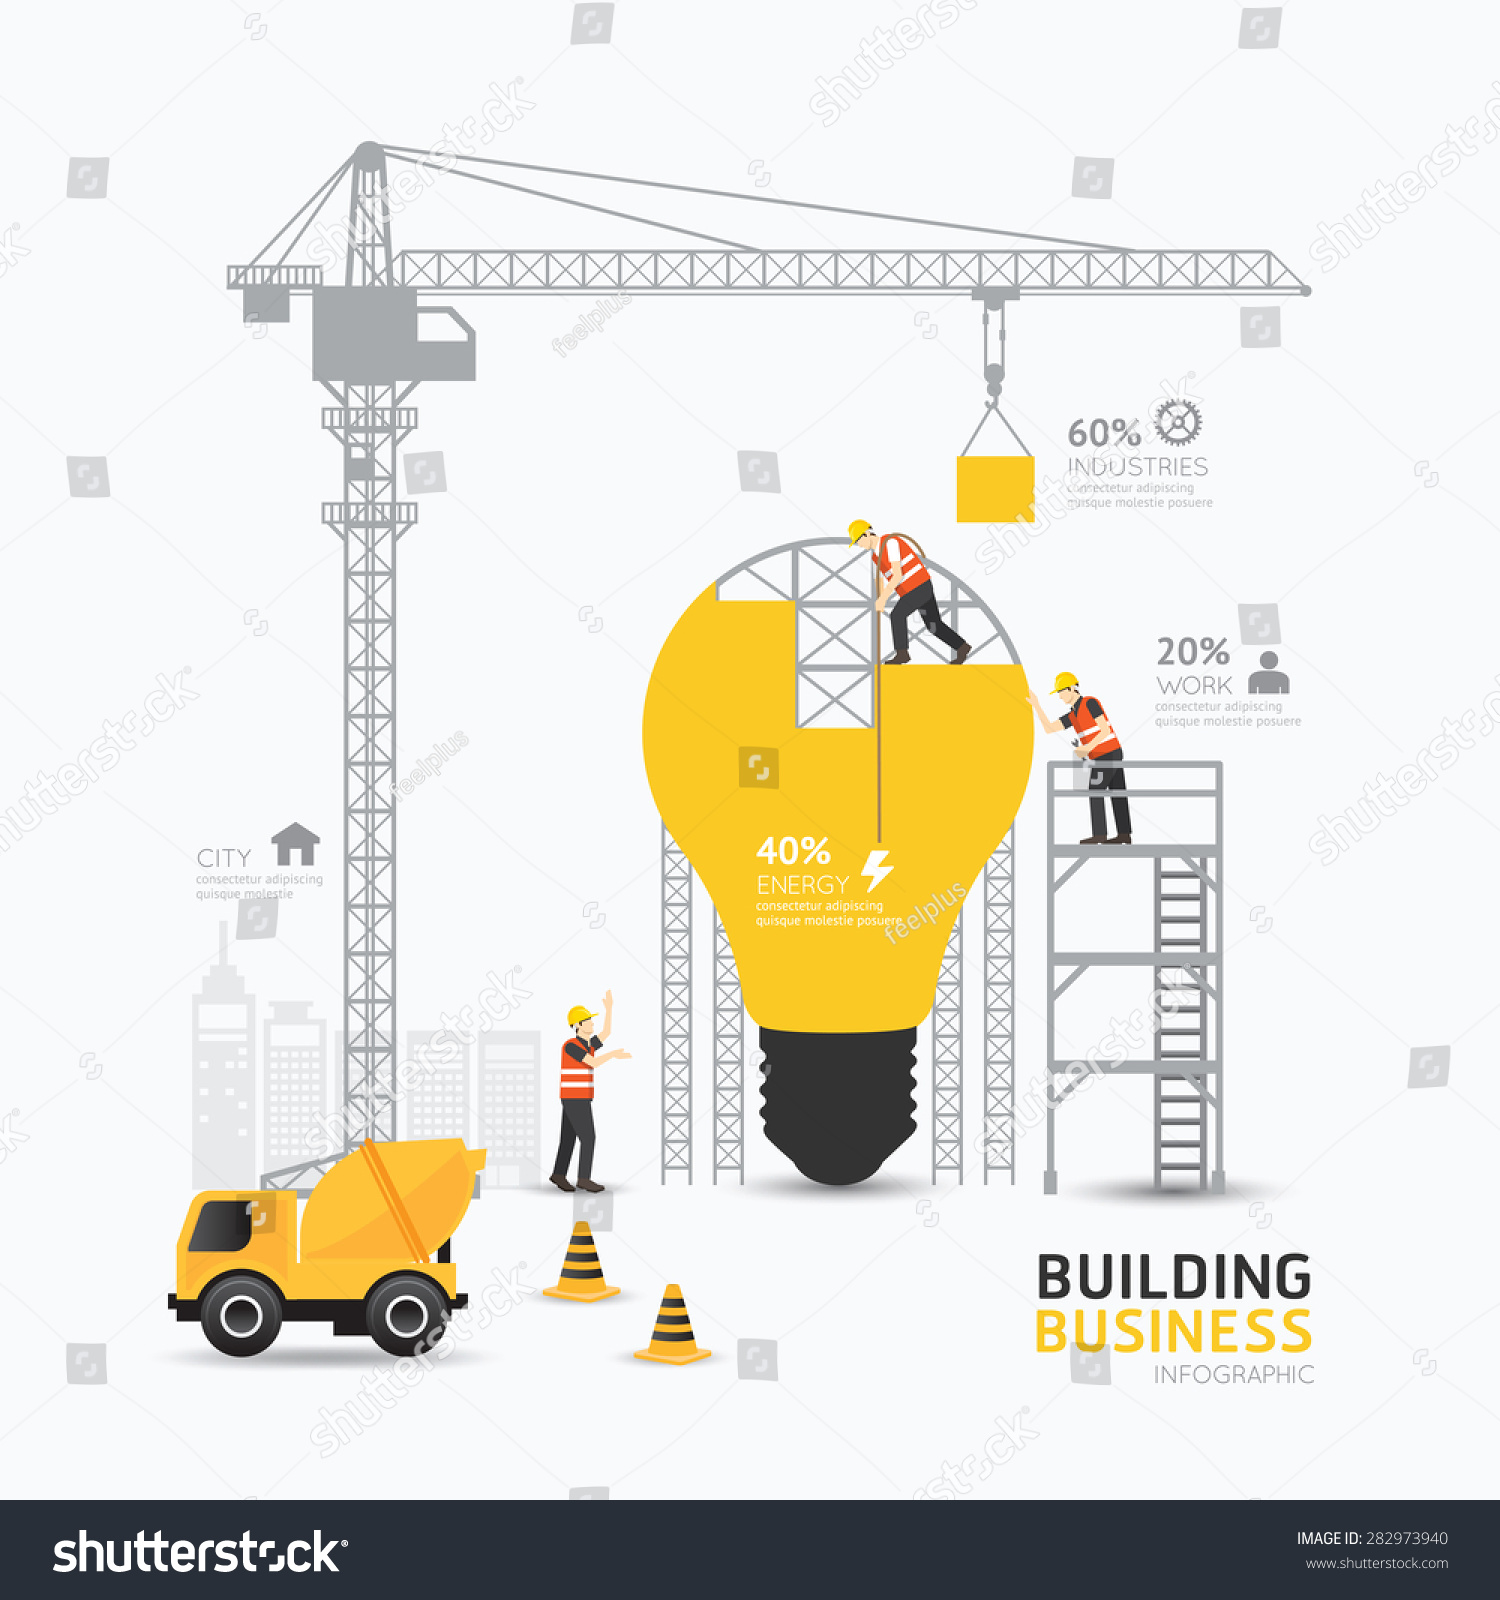 Infographic business light bulb shape template stock for Building design website